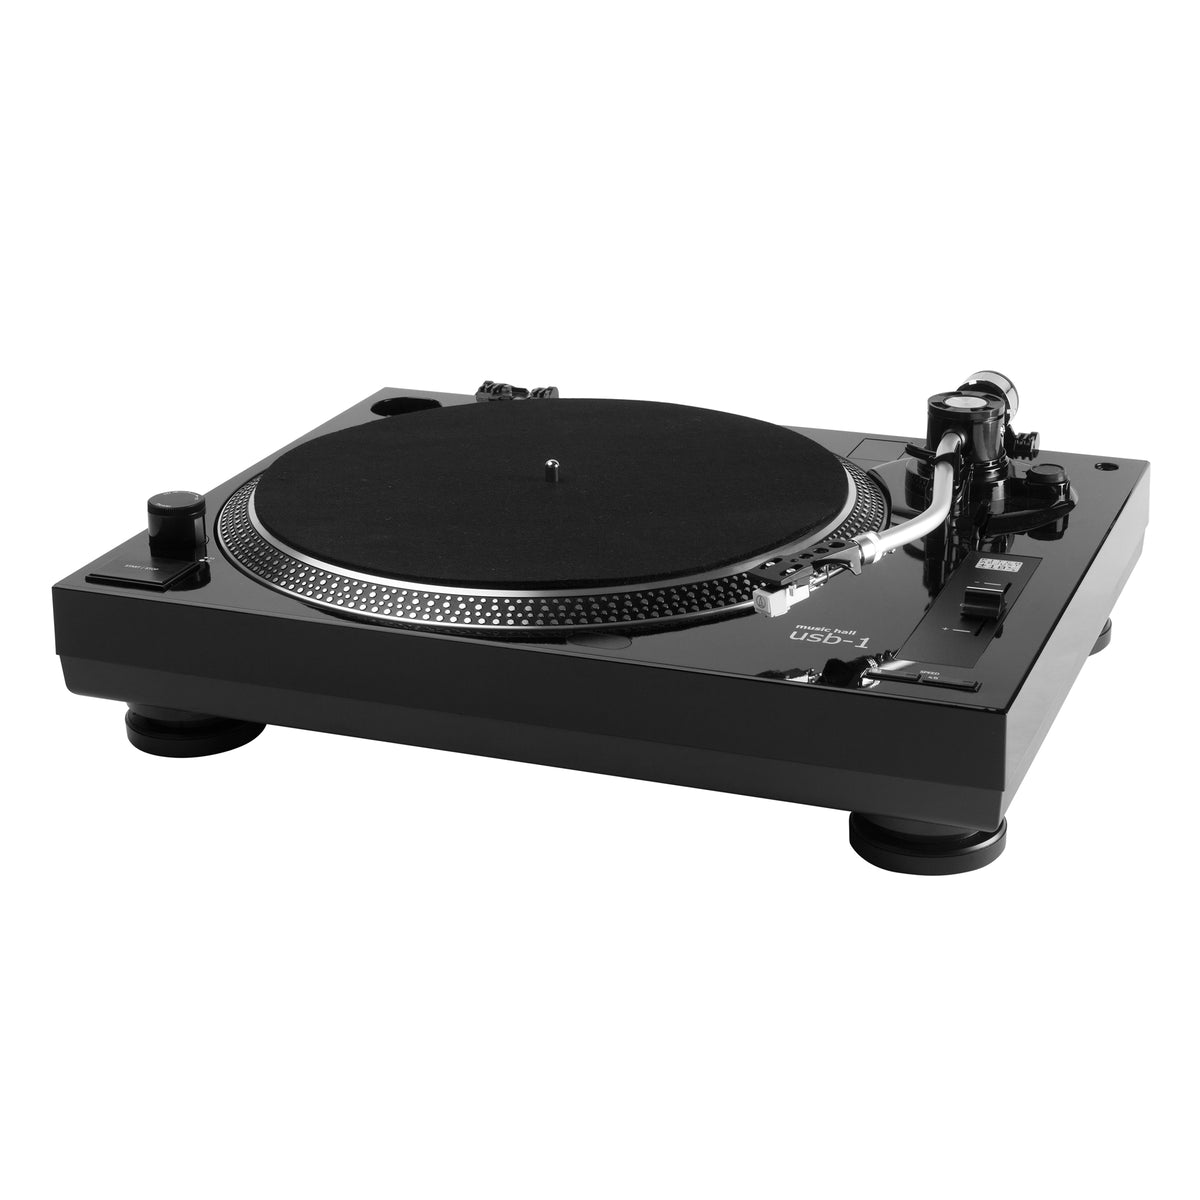 Music Hall Mmf Usb 1 Turntable Turntablelab Com